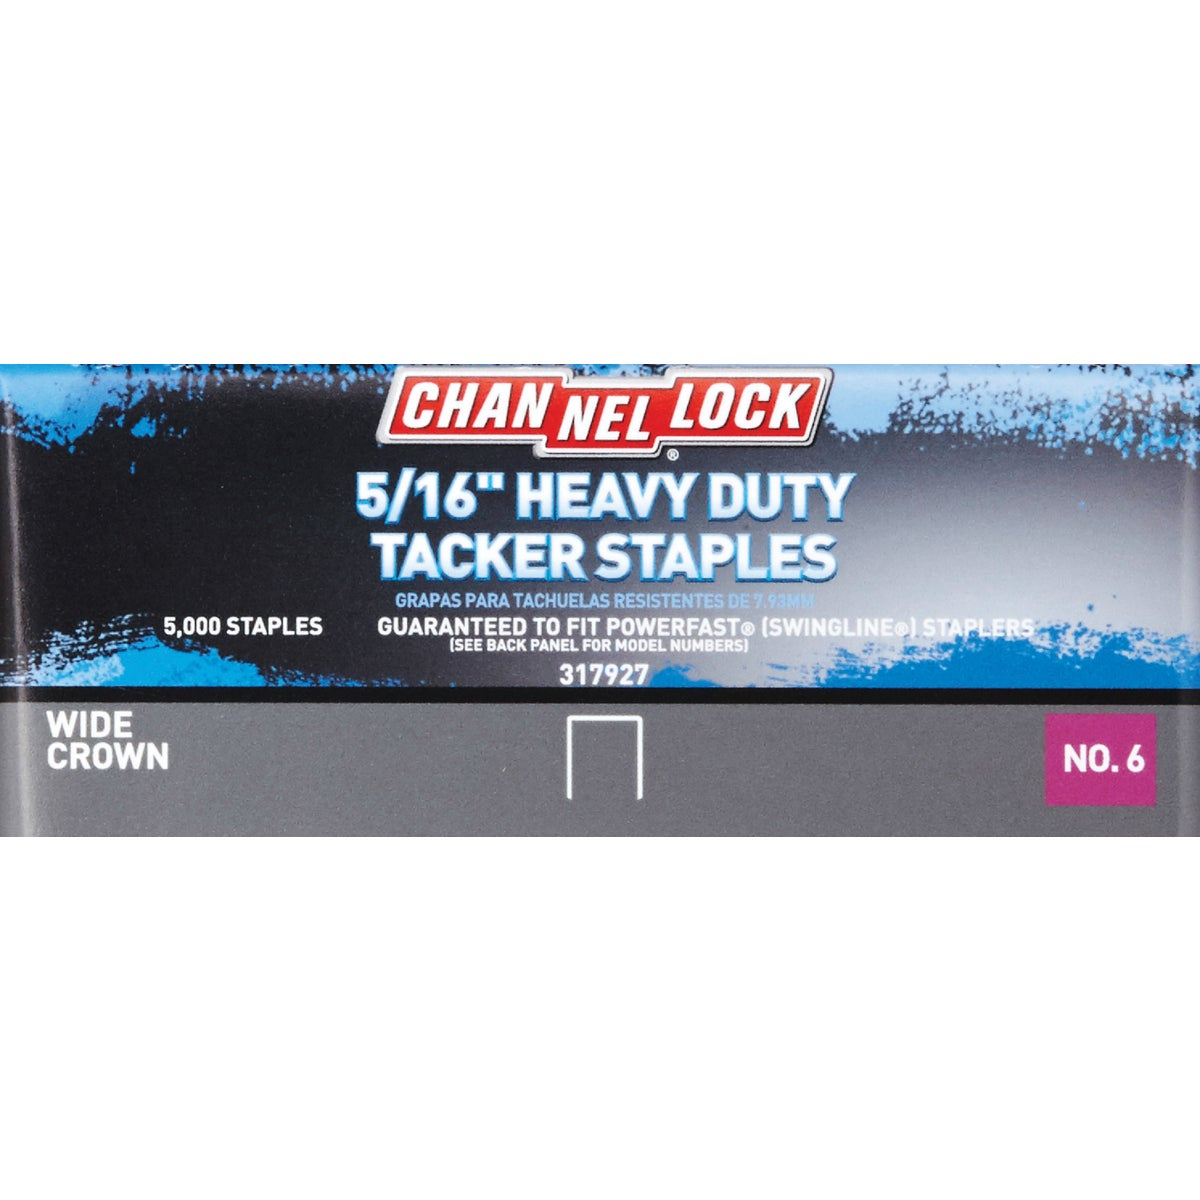 "5/16"" TACKER STAPLE"